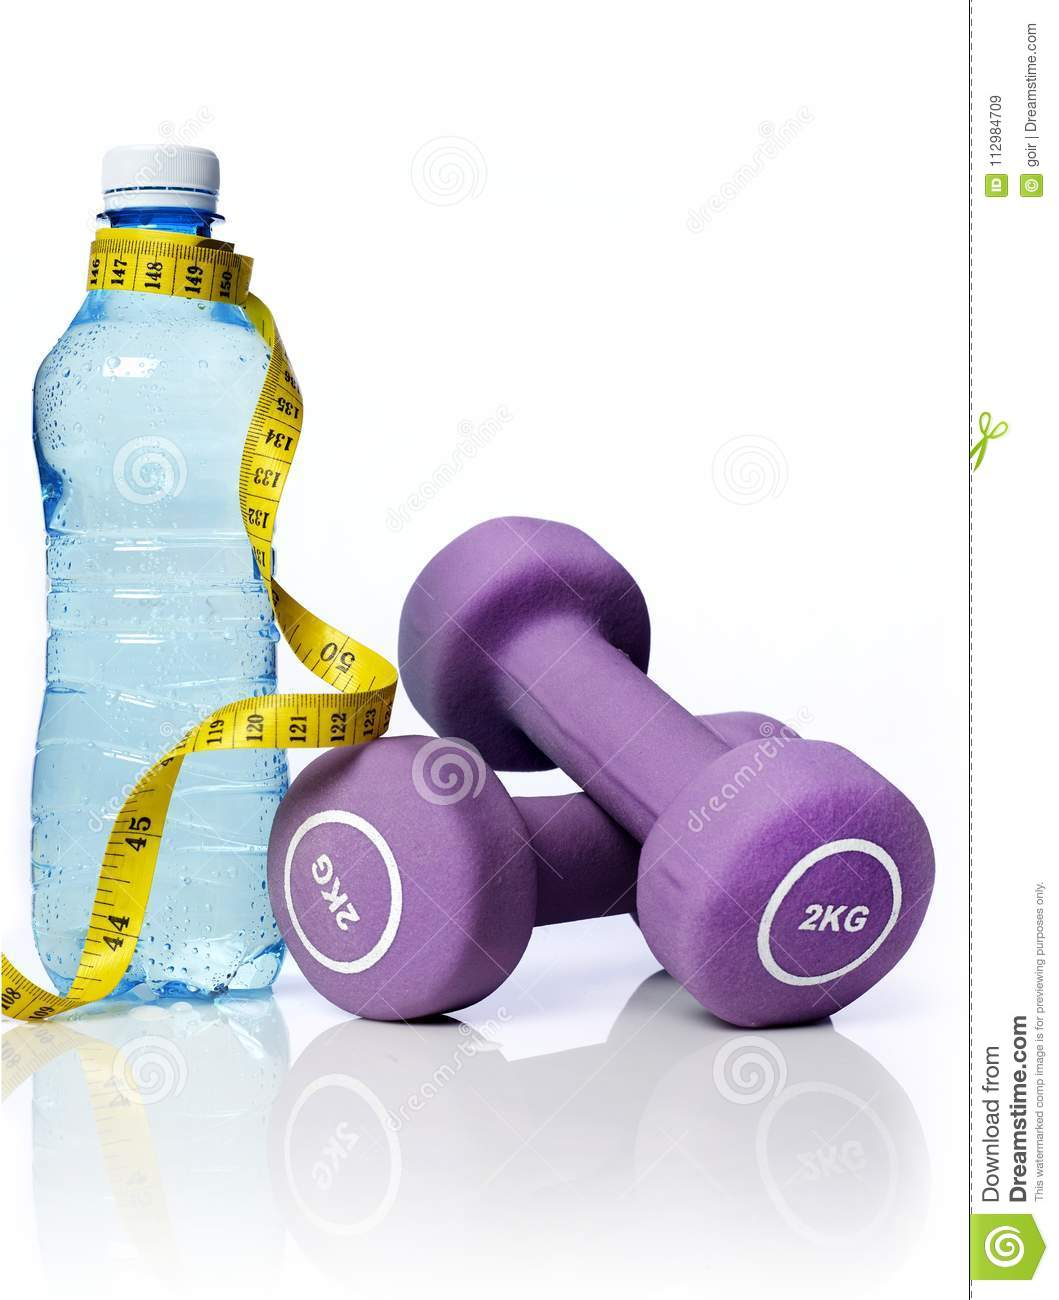 Water bottle and dumbbells